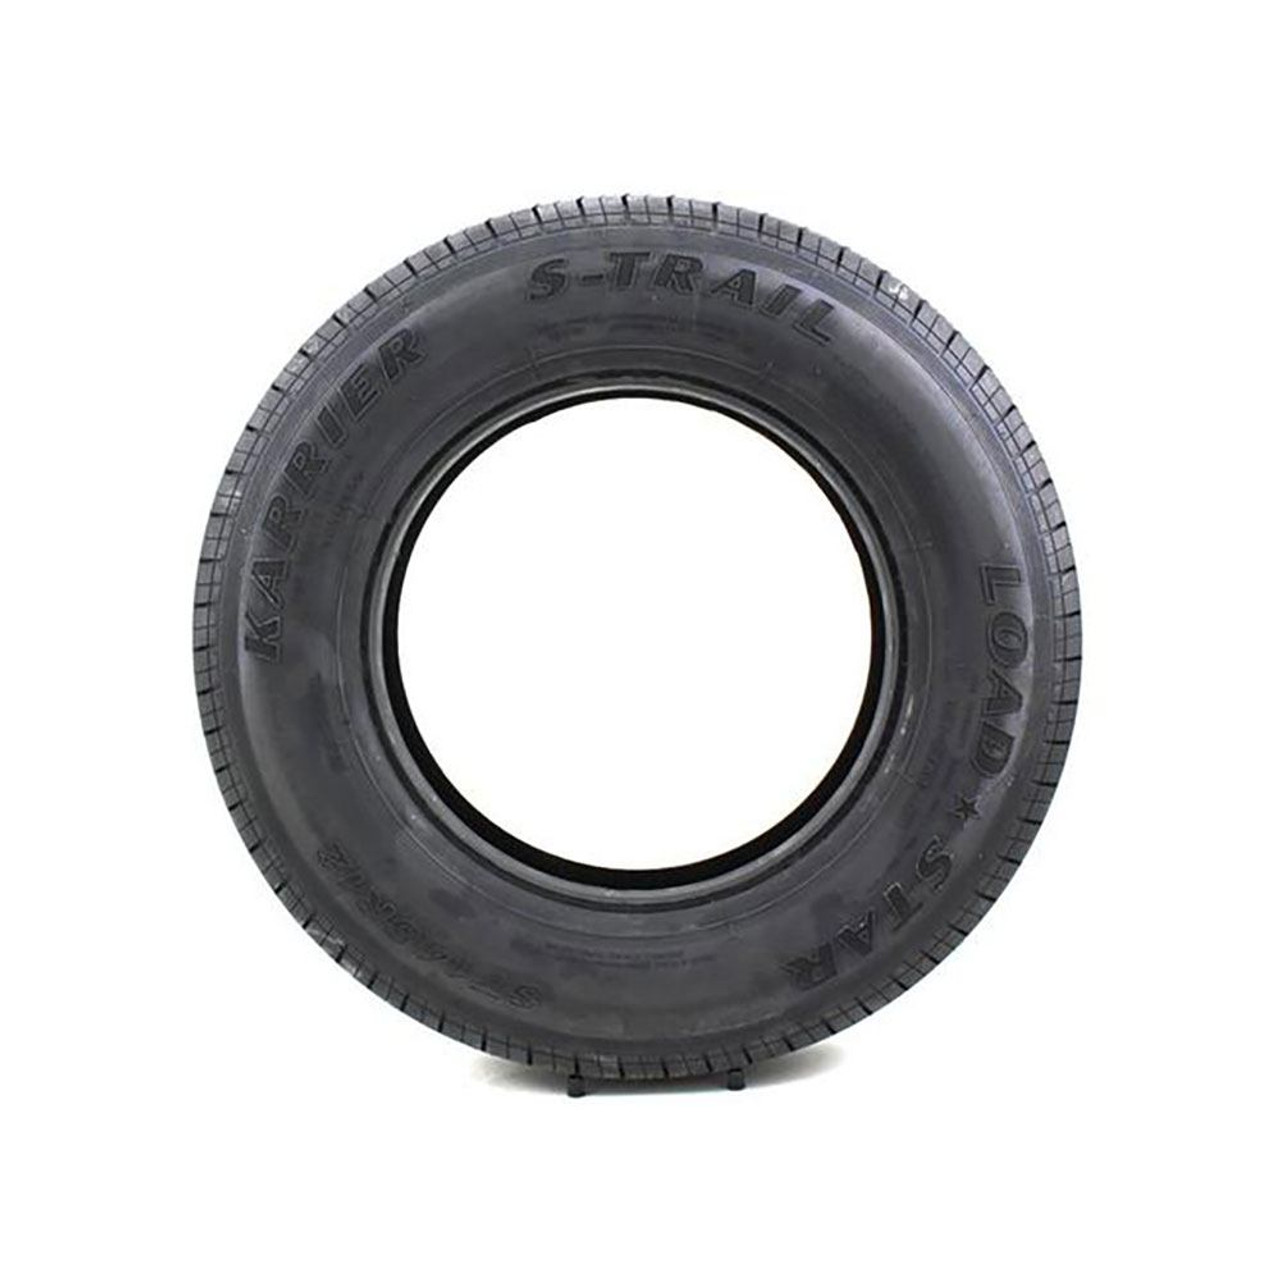 ST145/R12 Kenda Karrier S-Trail Radial Trailer Tire - Load Range E